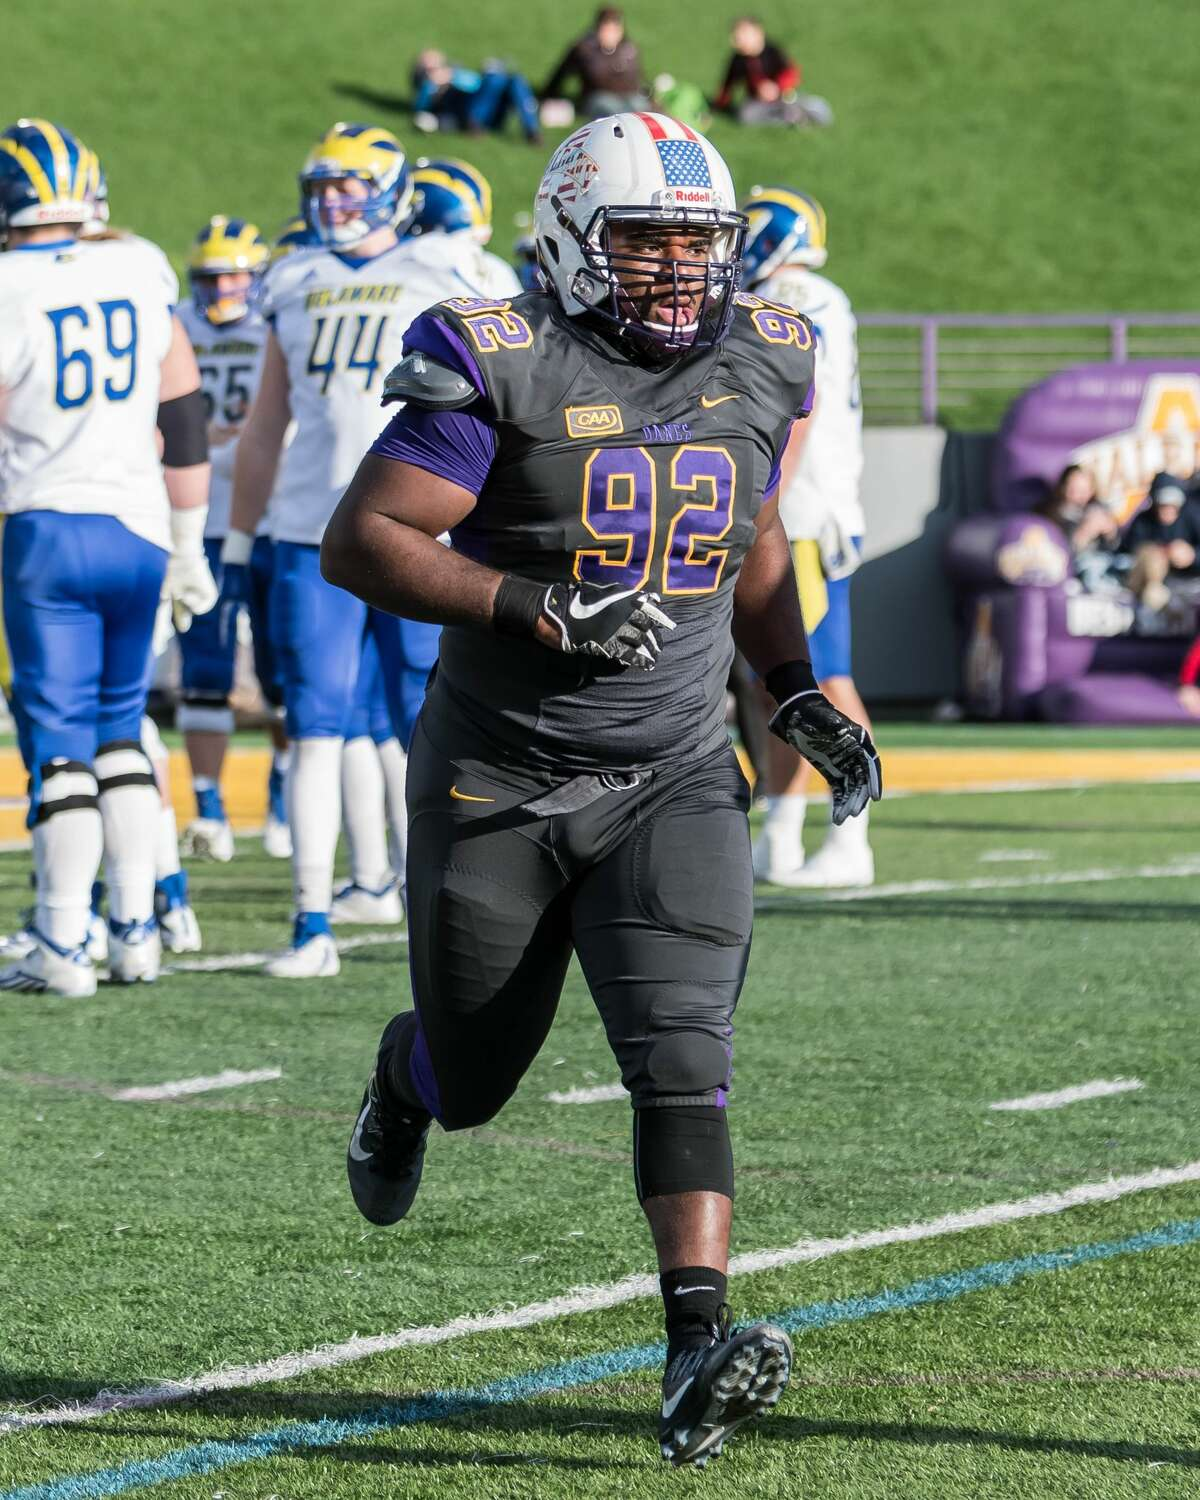 UAlbany defensive tackle Mazon Walker was second on the team with 14 tackles for losses last season. (Bill Ziskin/UAlbany Athletics)